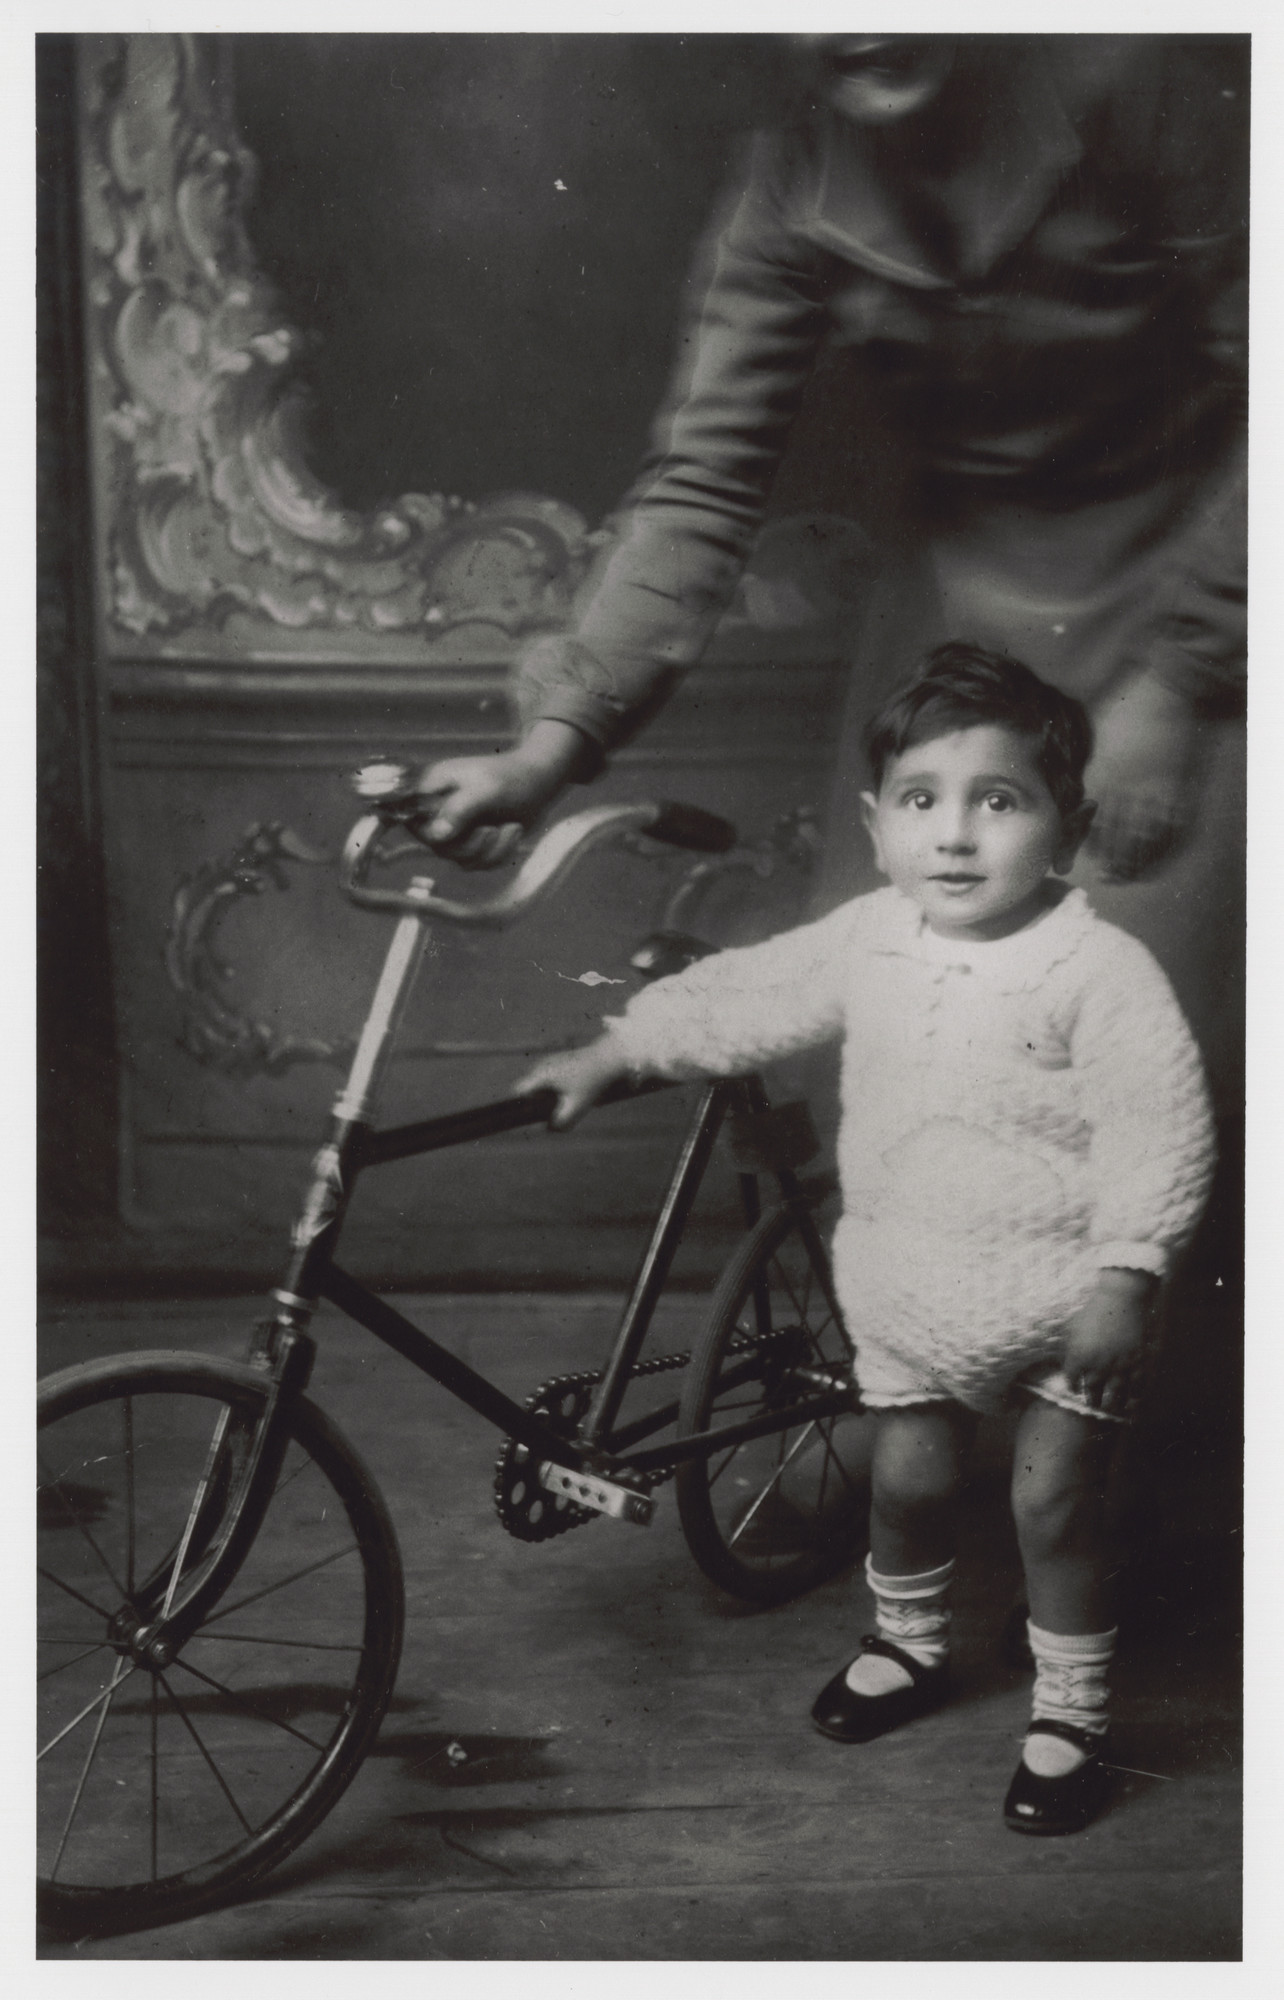 Victor Nahmias poses next to a bicycle.